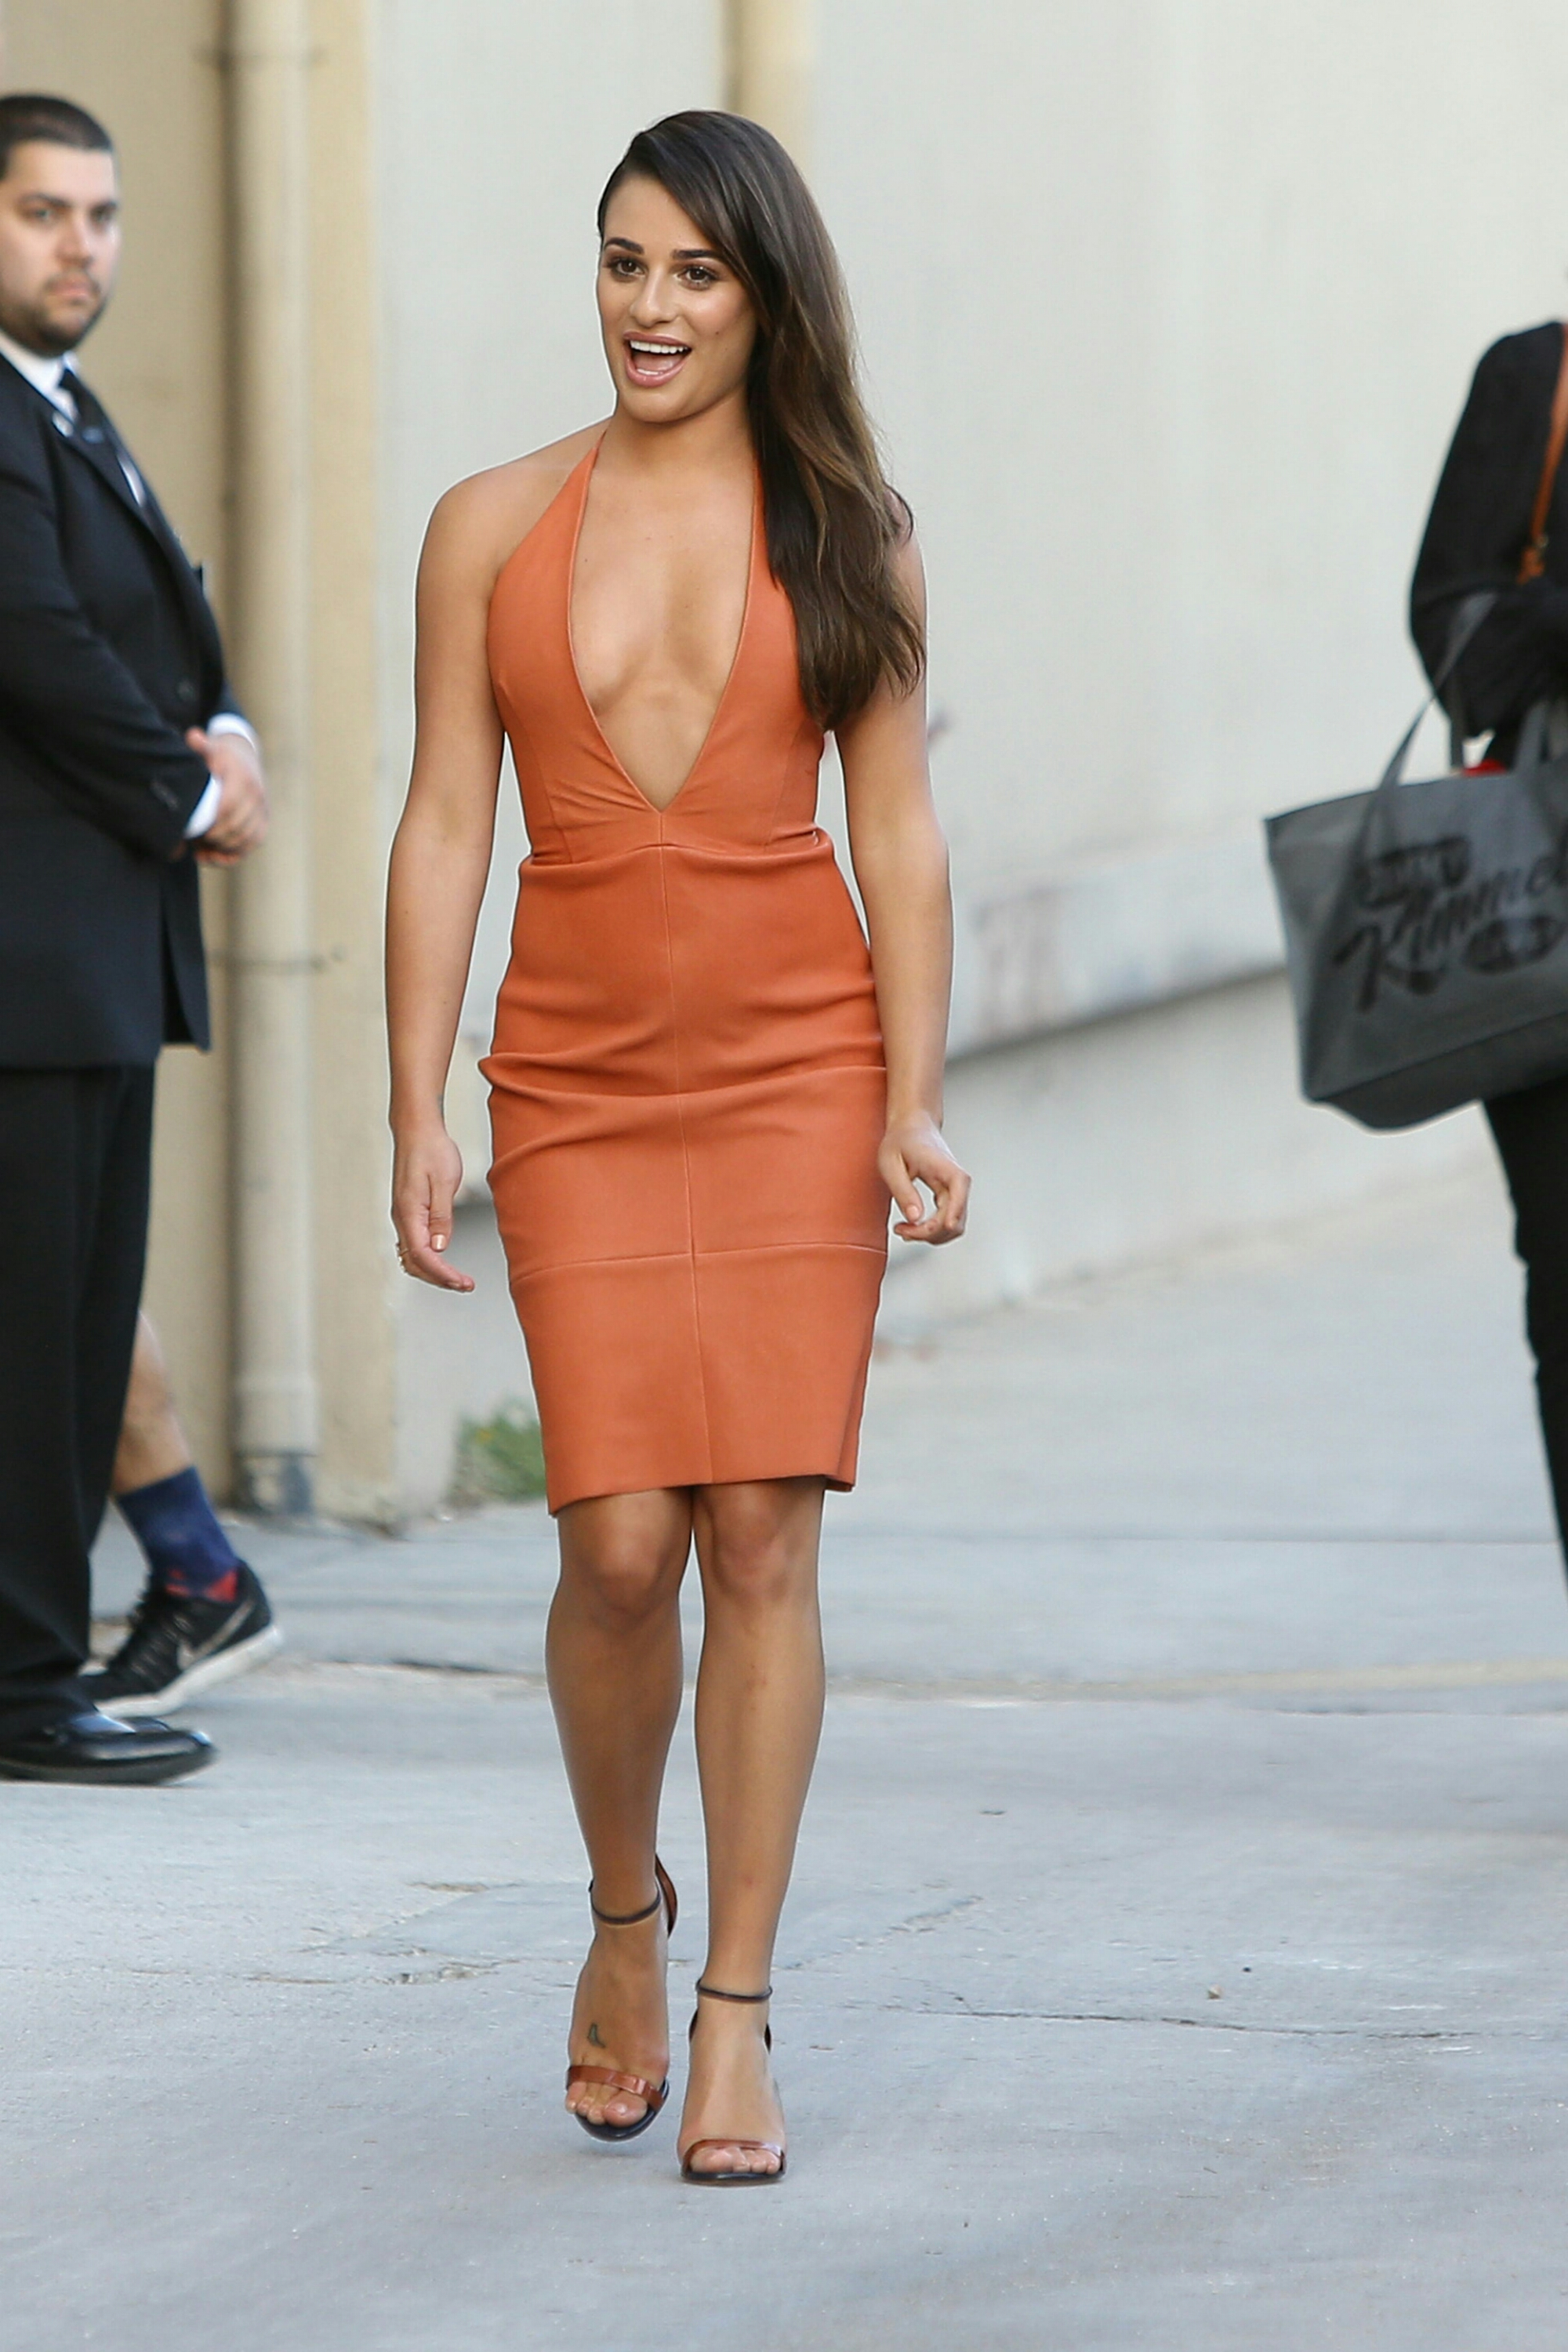 Lea Michele Showing Off Her Sexy Curves And Great Legs In A